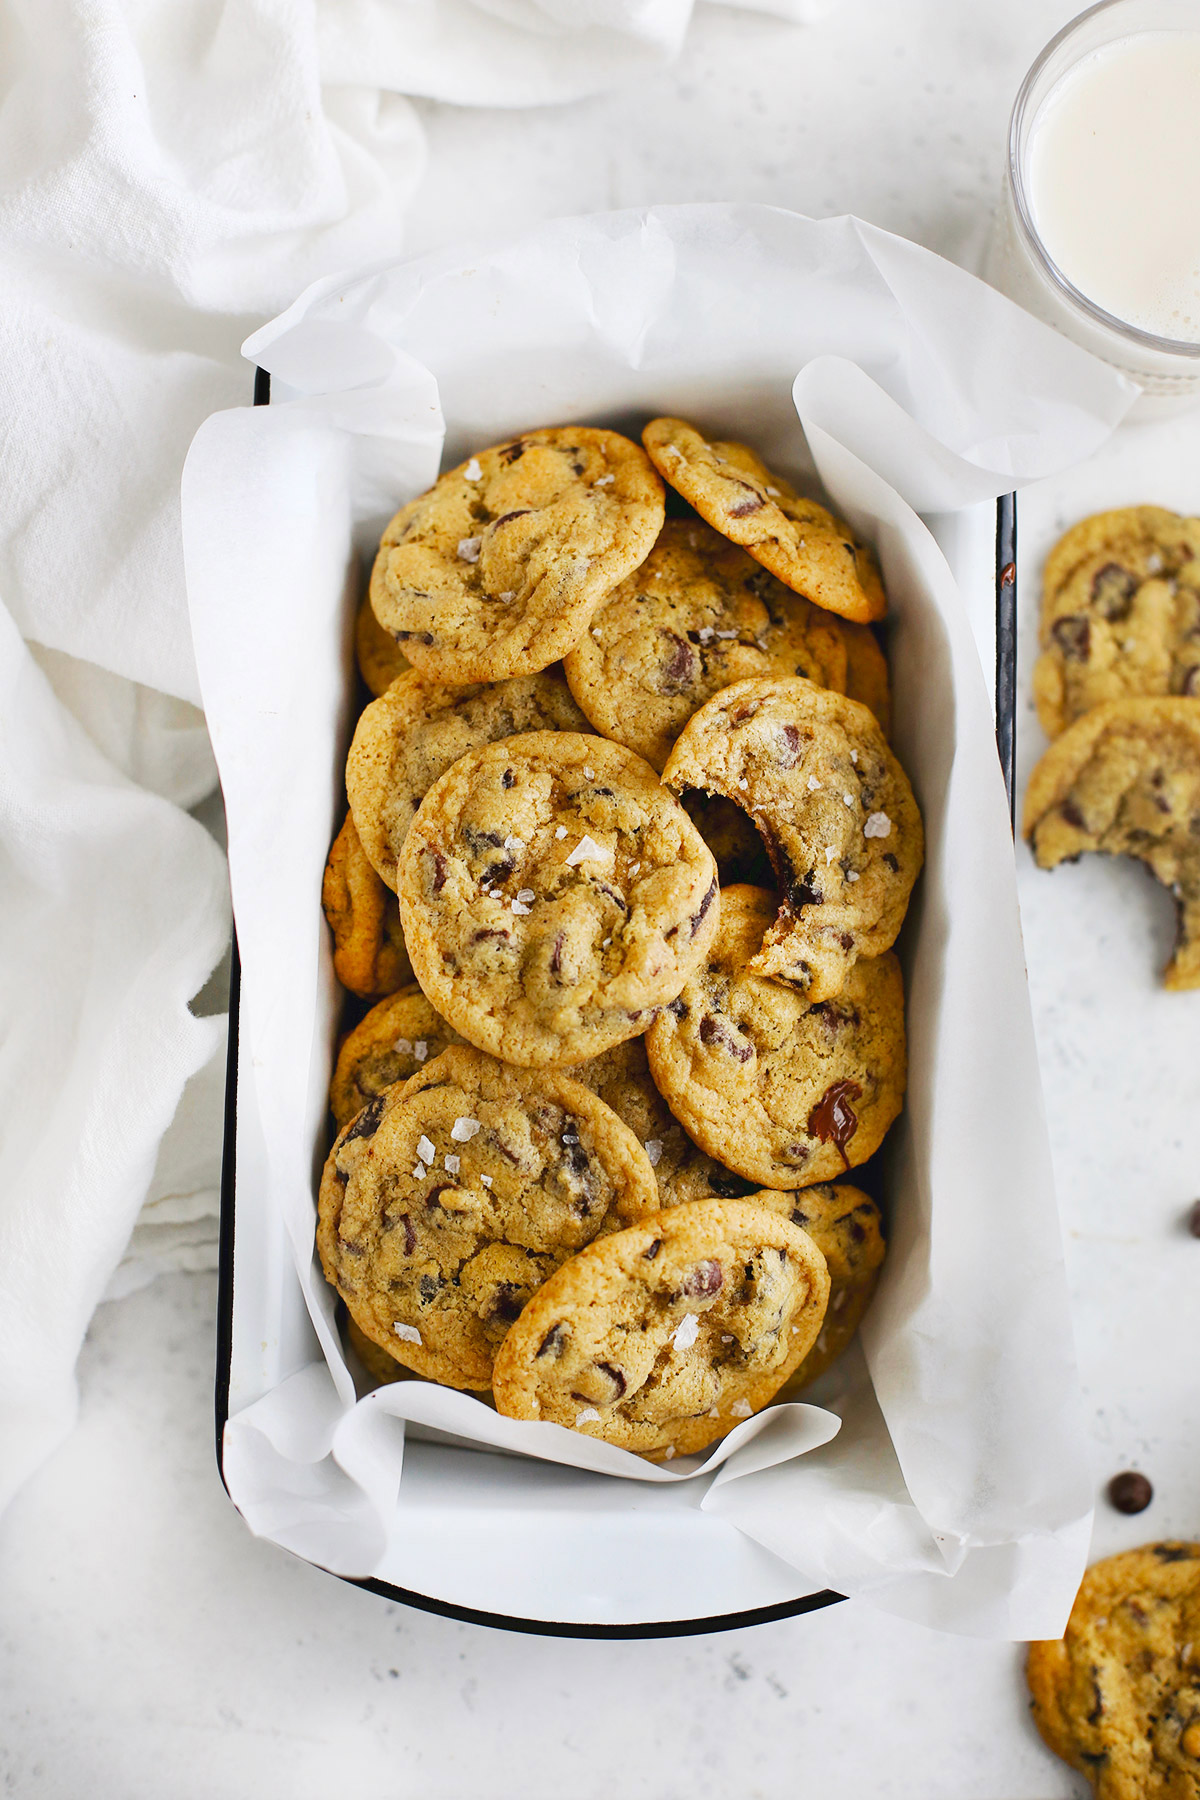 Overhead photo of gluten free chocolate chip cookies in a white enamel pan